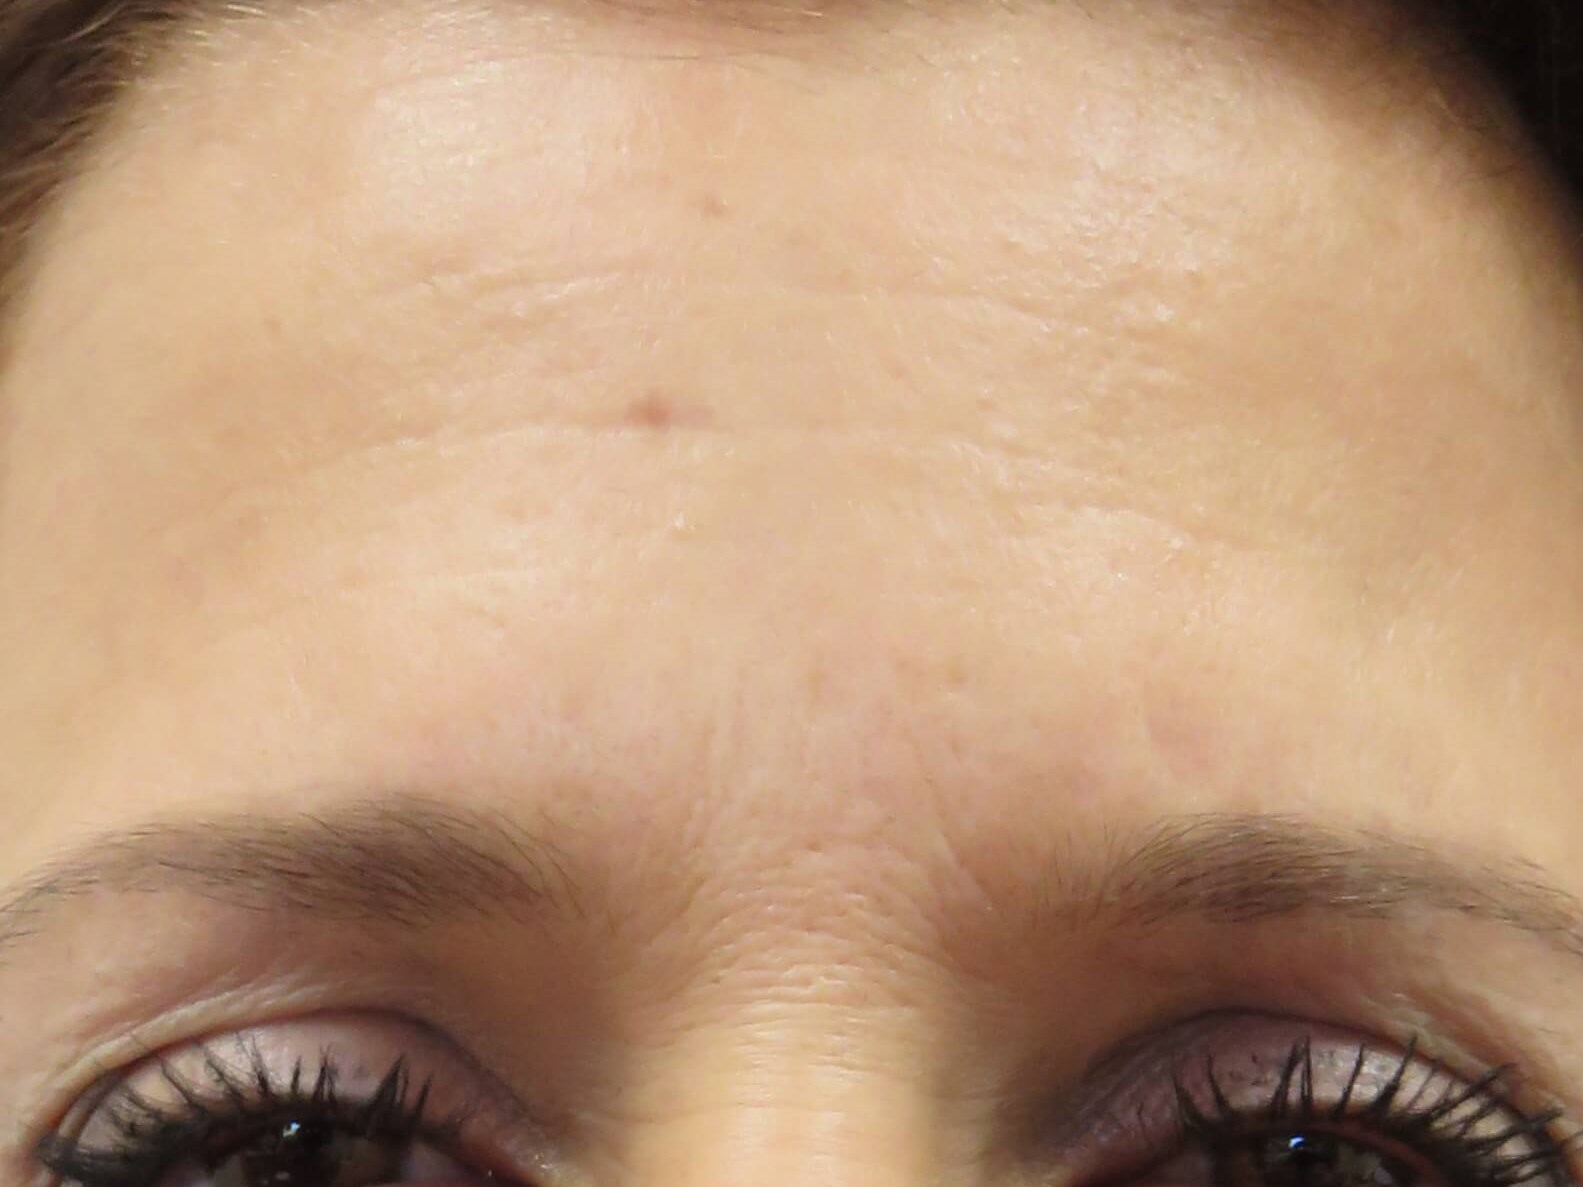 Dysport in Forehead by Dr. Lee After Dysport Injections